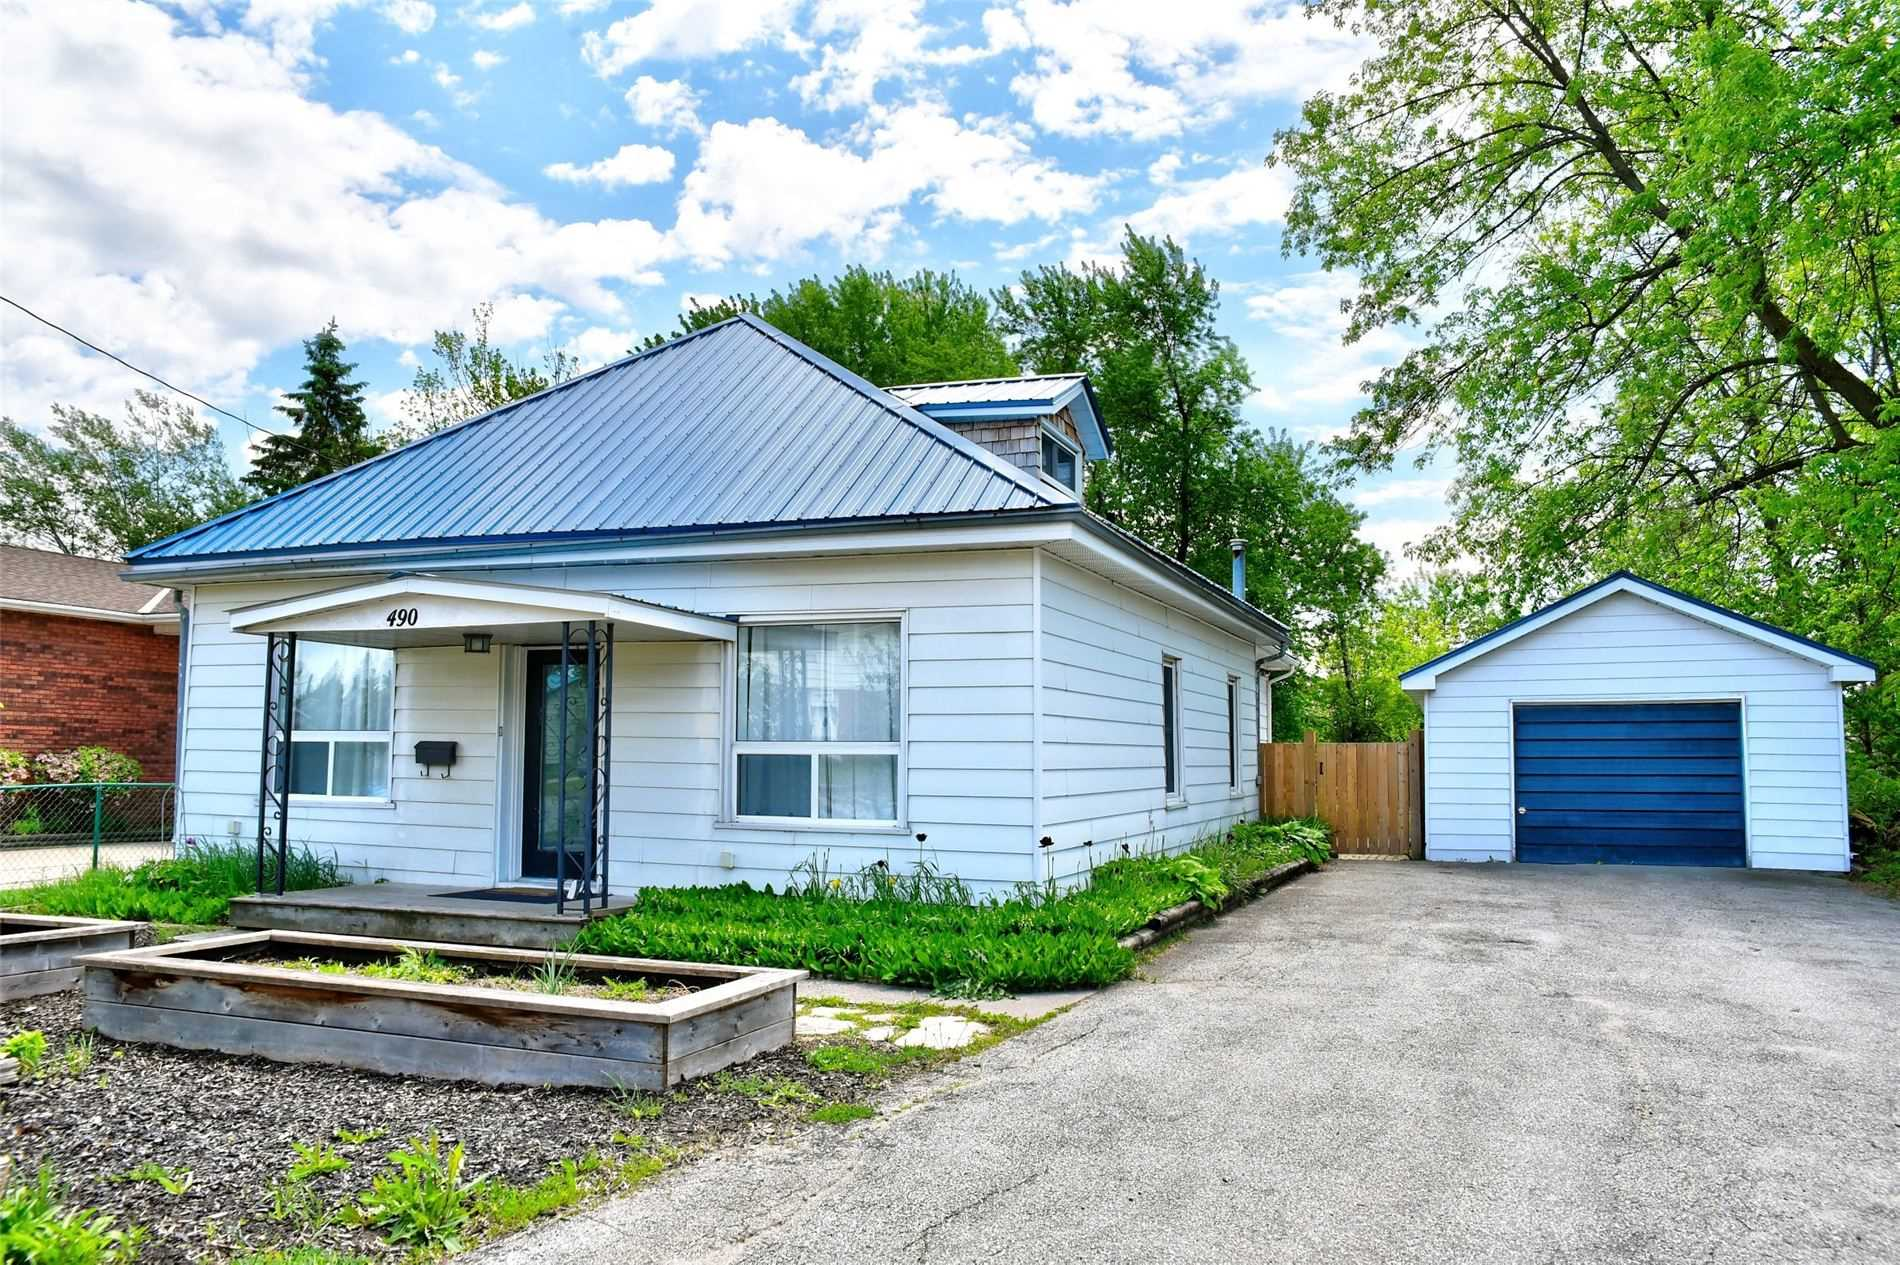 pictures of house for sale MLS: S4709654 located at 490 Sixth St, Collingwood L9Y1Z9